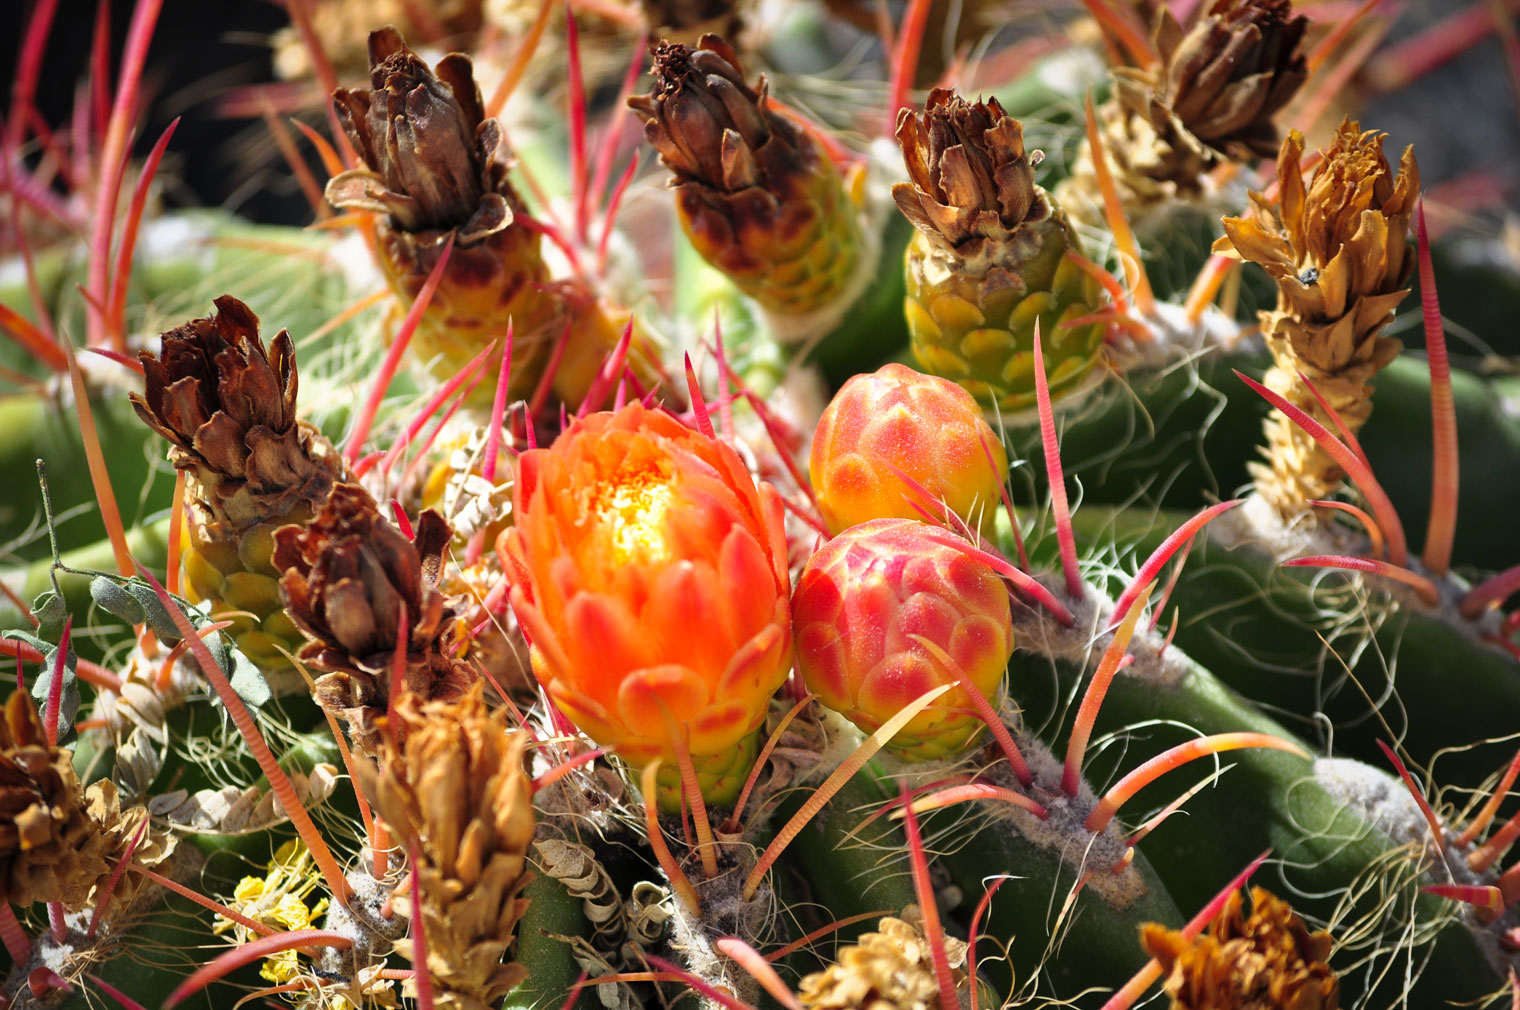 A close-up of the top of the Fire Barrel cactus with red spines and three emerging pink-orange-yellow flower buds on top.